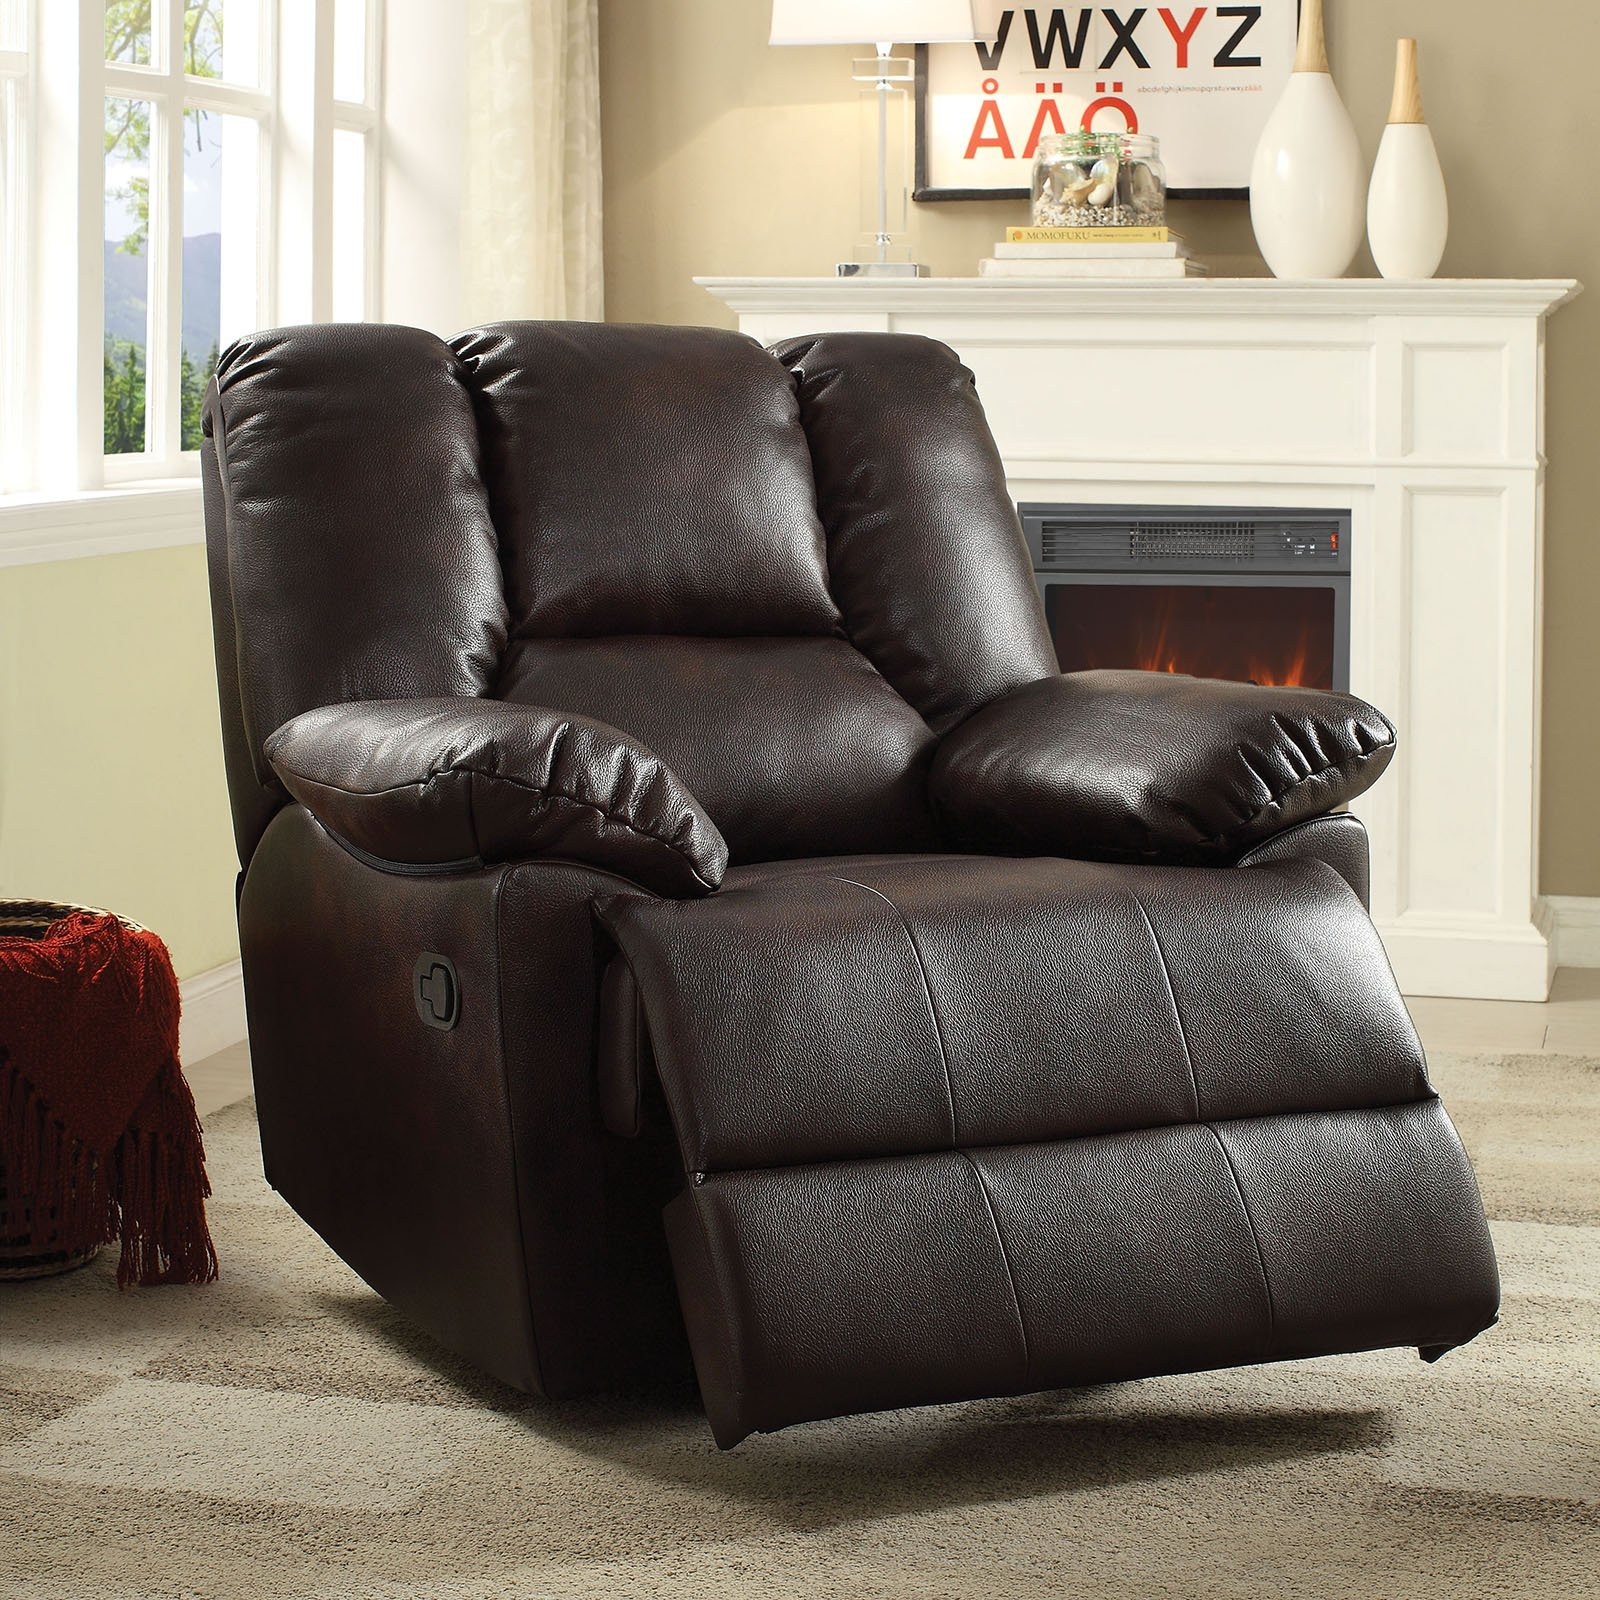 ACME Oliver Glider Recliner, Gray Leather-Aire by Acme